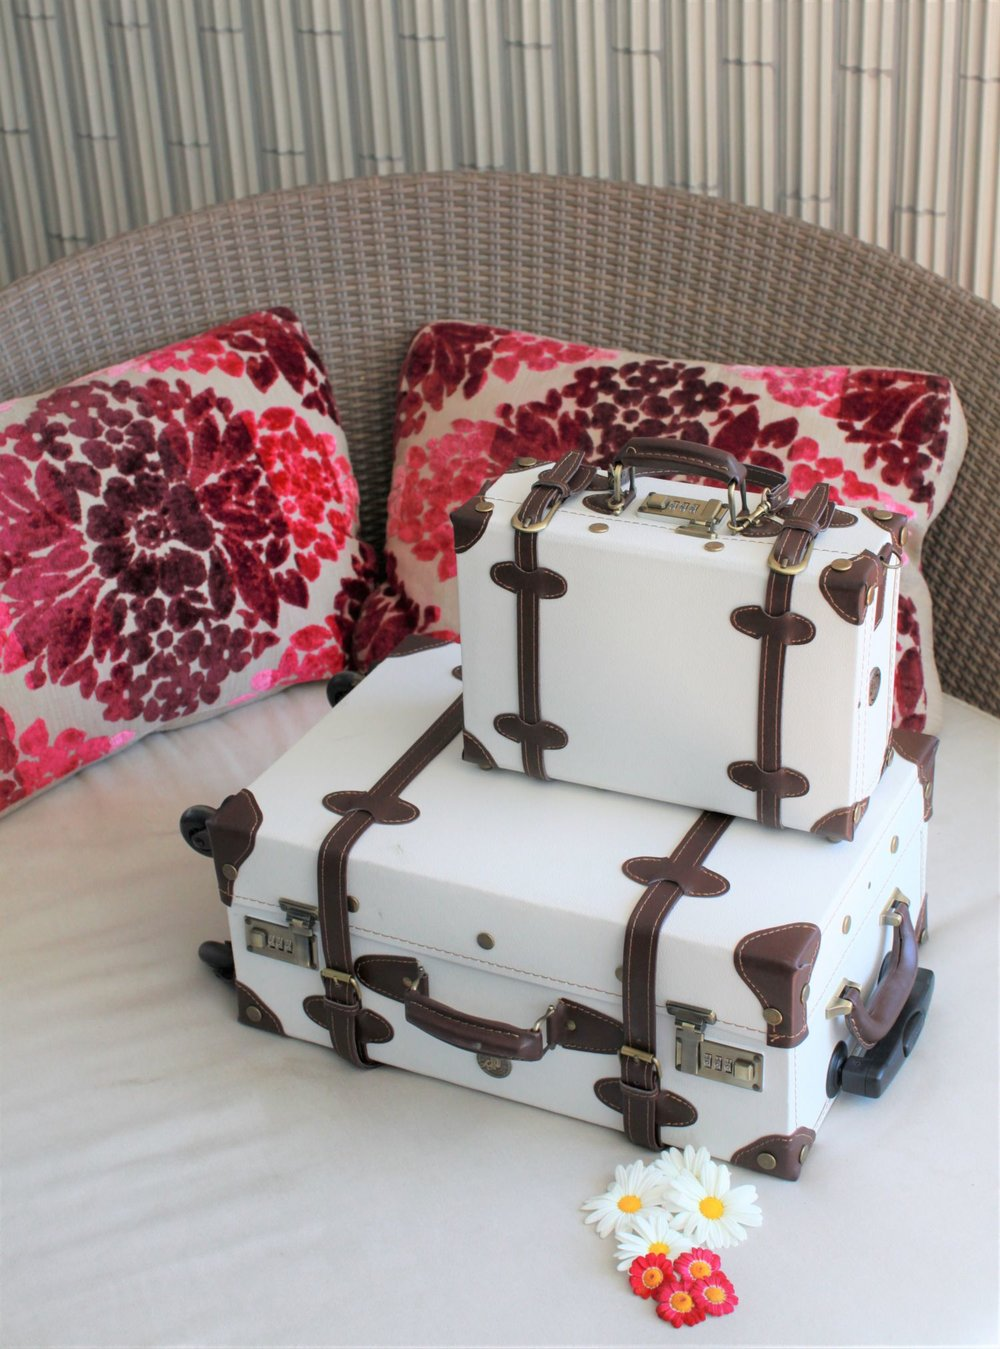 Beautiful vintage design luggage set - lightweight 4 wheel suitcase and kids suitcase or messenger